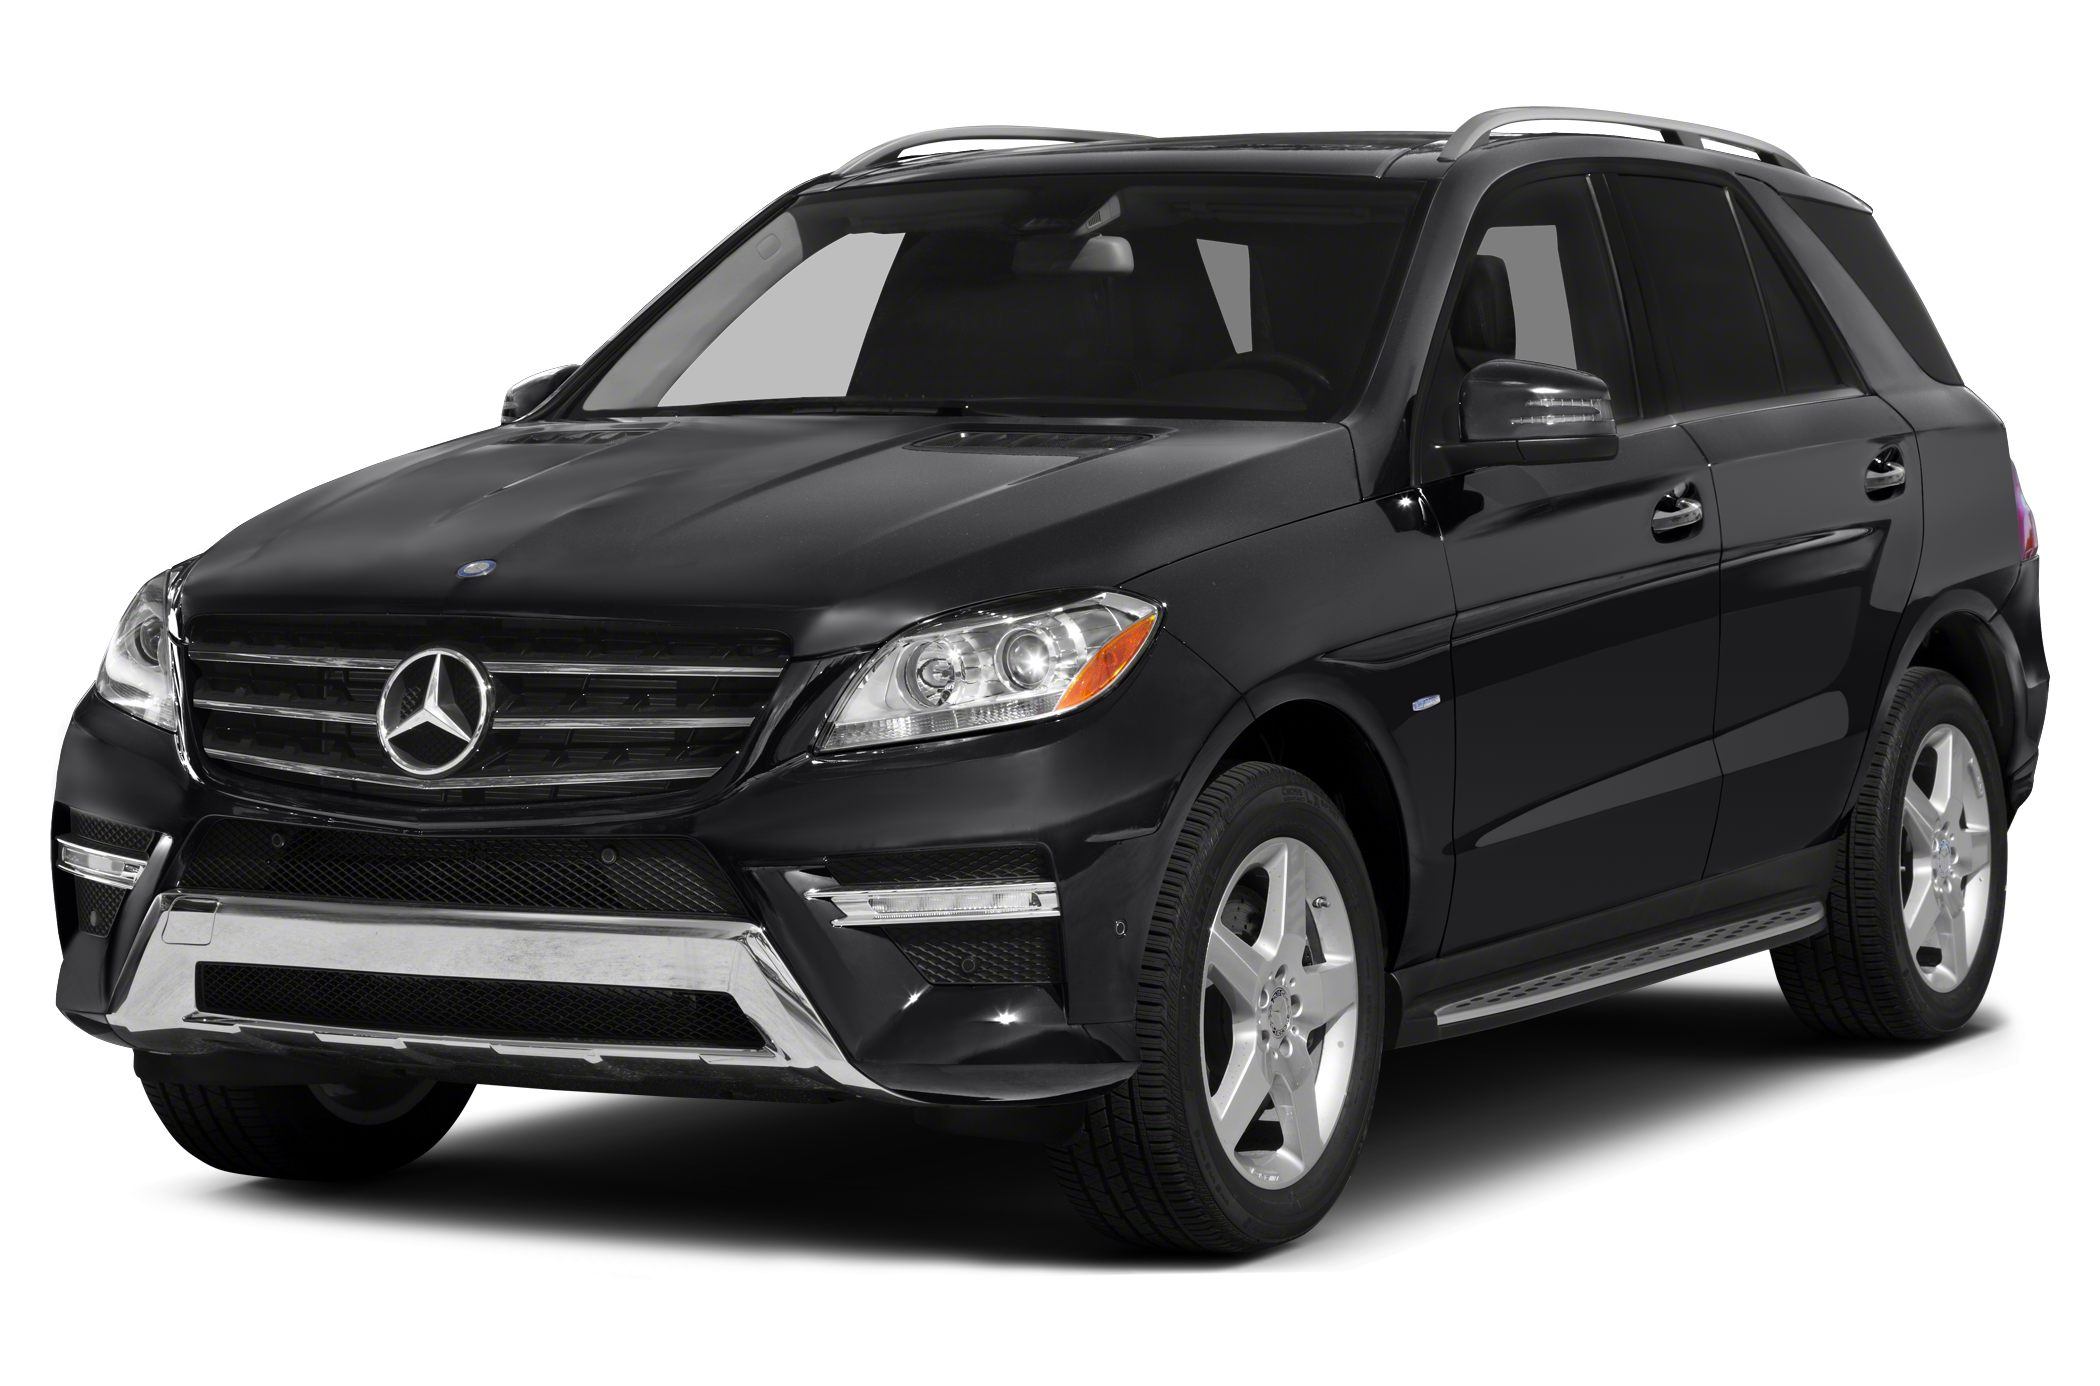 USC20MBS171A021001 Cool Review About 2012 Mercedes Ml350 Bluetec